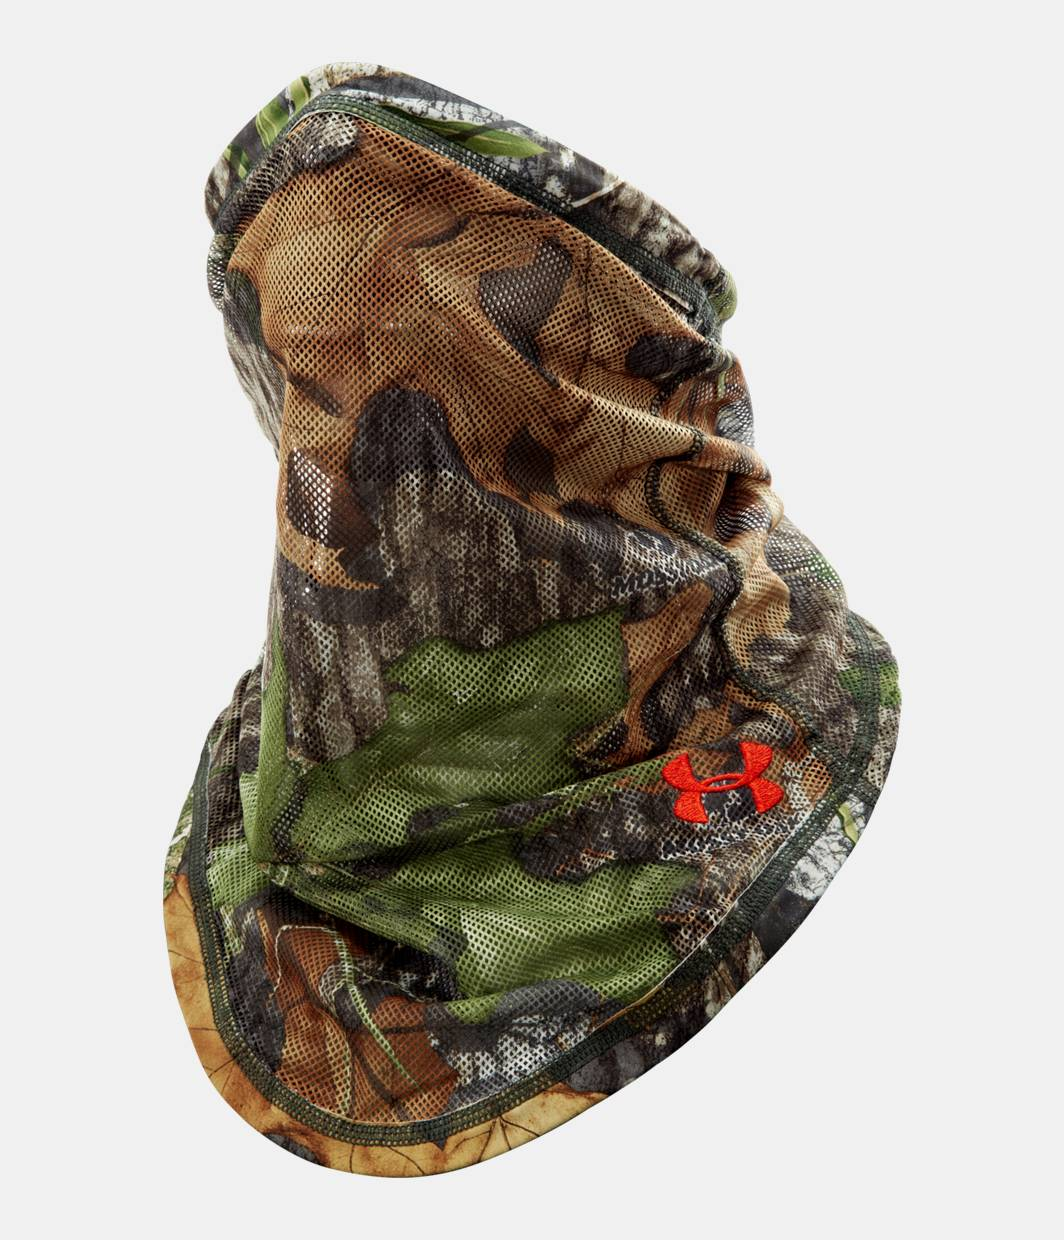 Classy Under Armour Neck Gaiter | Fresh Camo Neck Gaiter